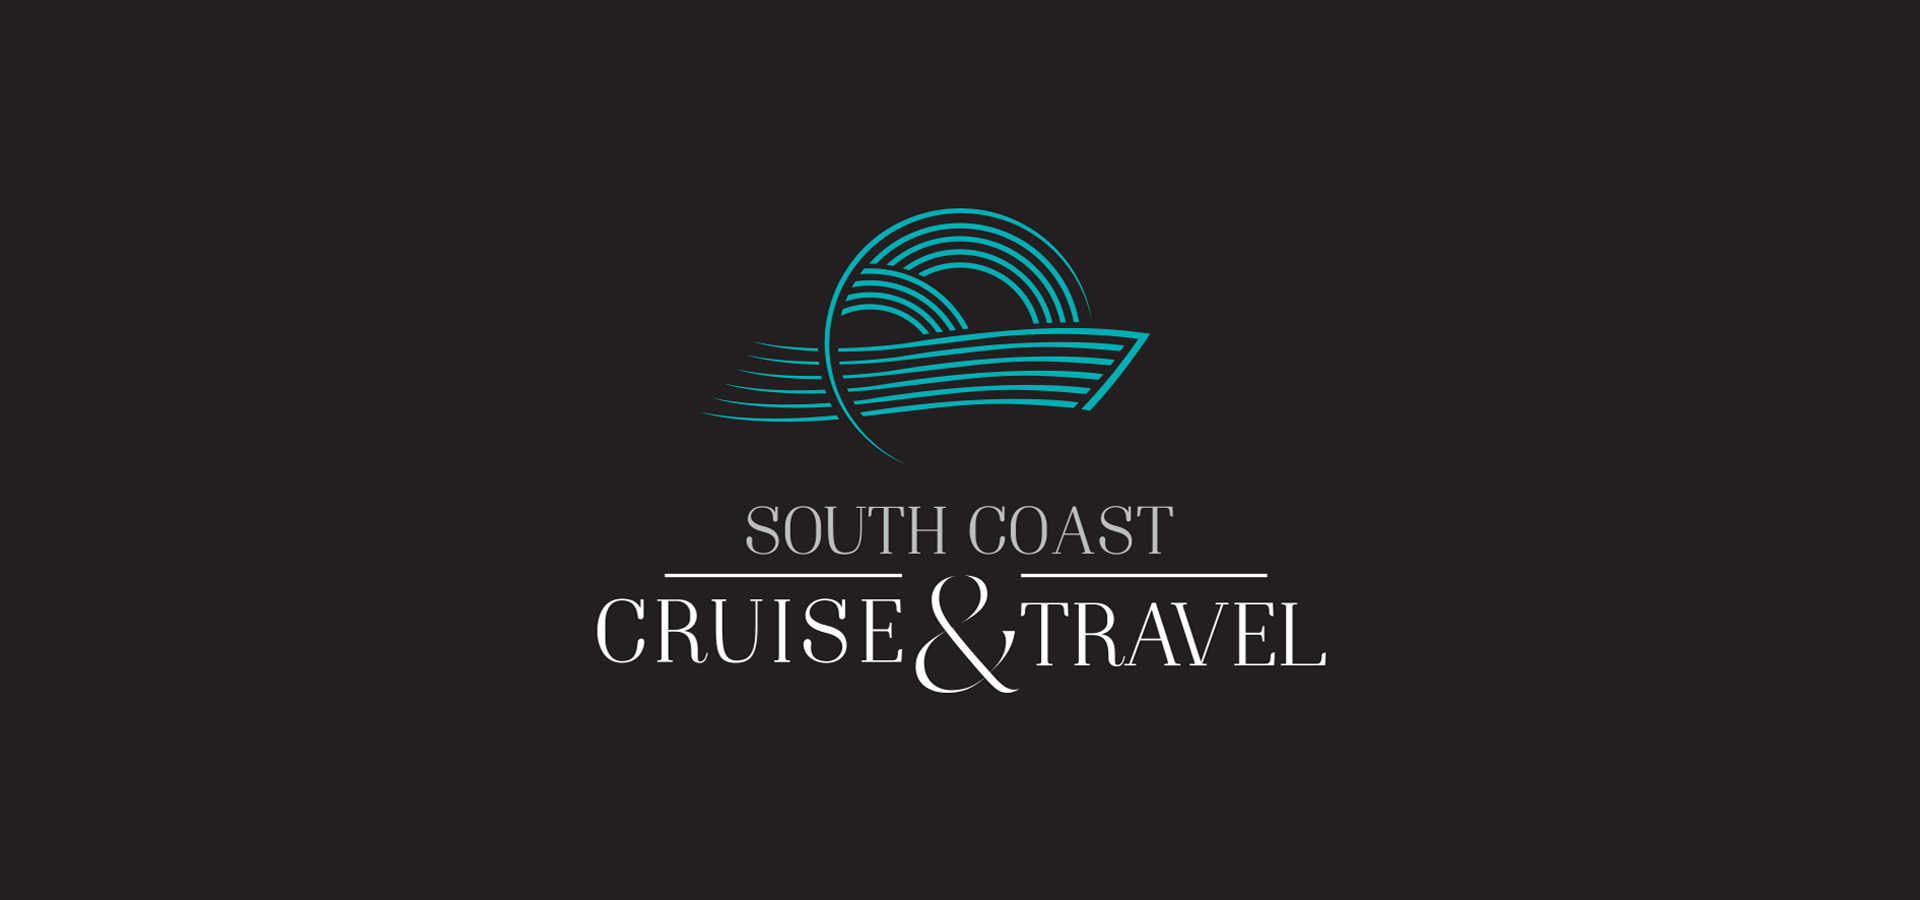 South Coast Cruise and Travel Logo